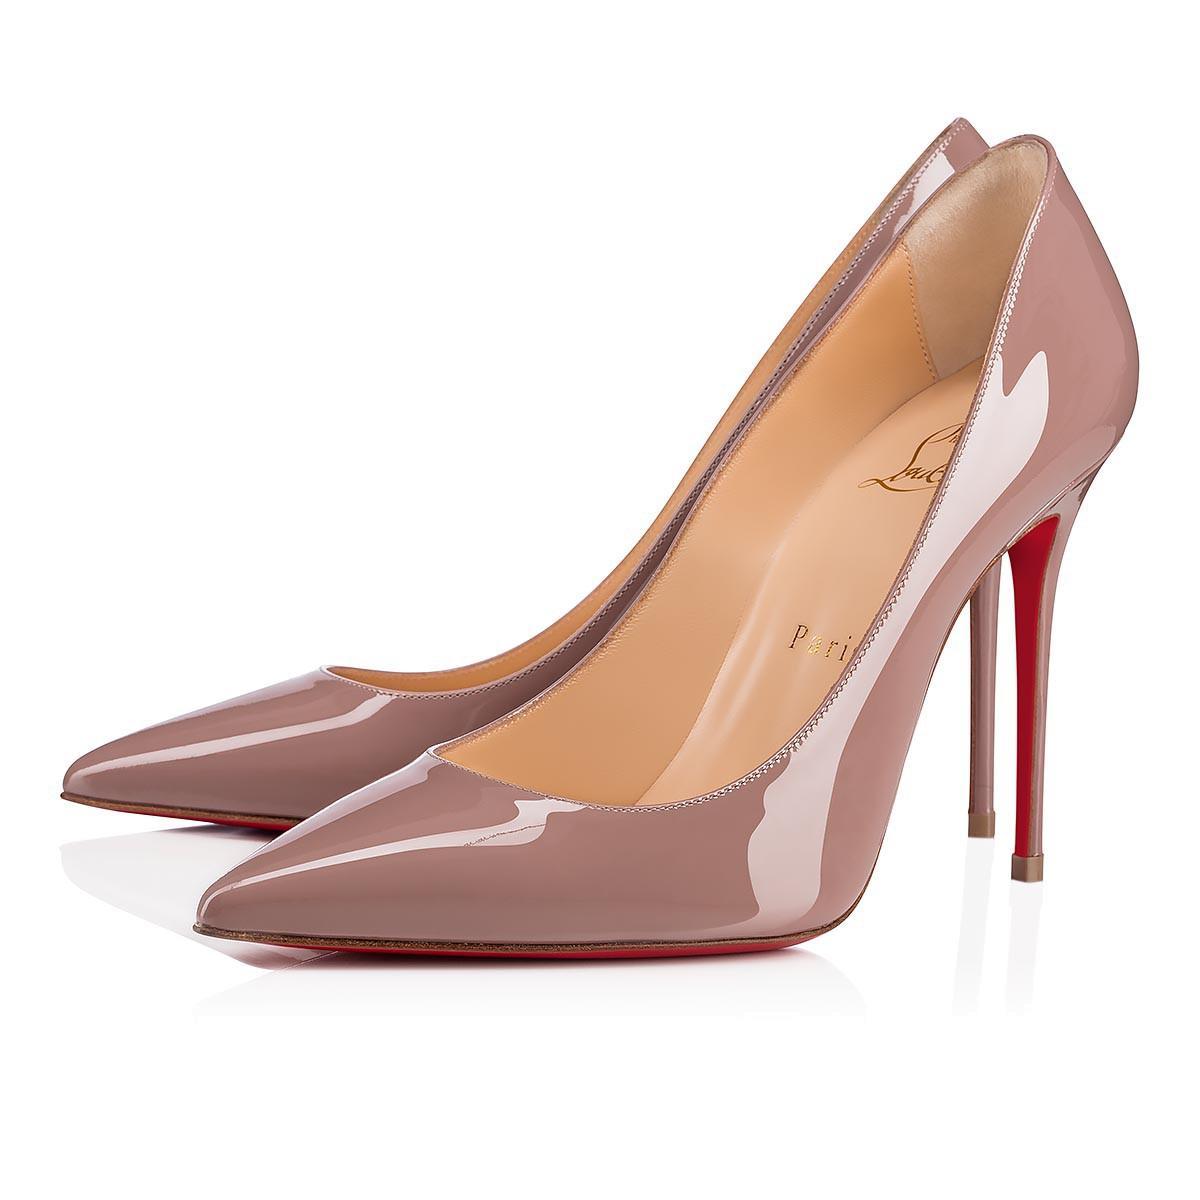 4c10ed288d89 Christian Louboutin Decollete 554 In Antic